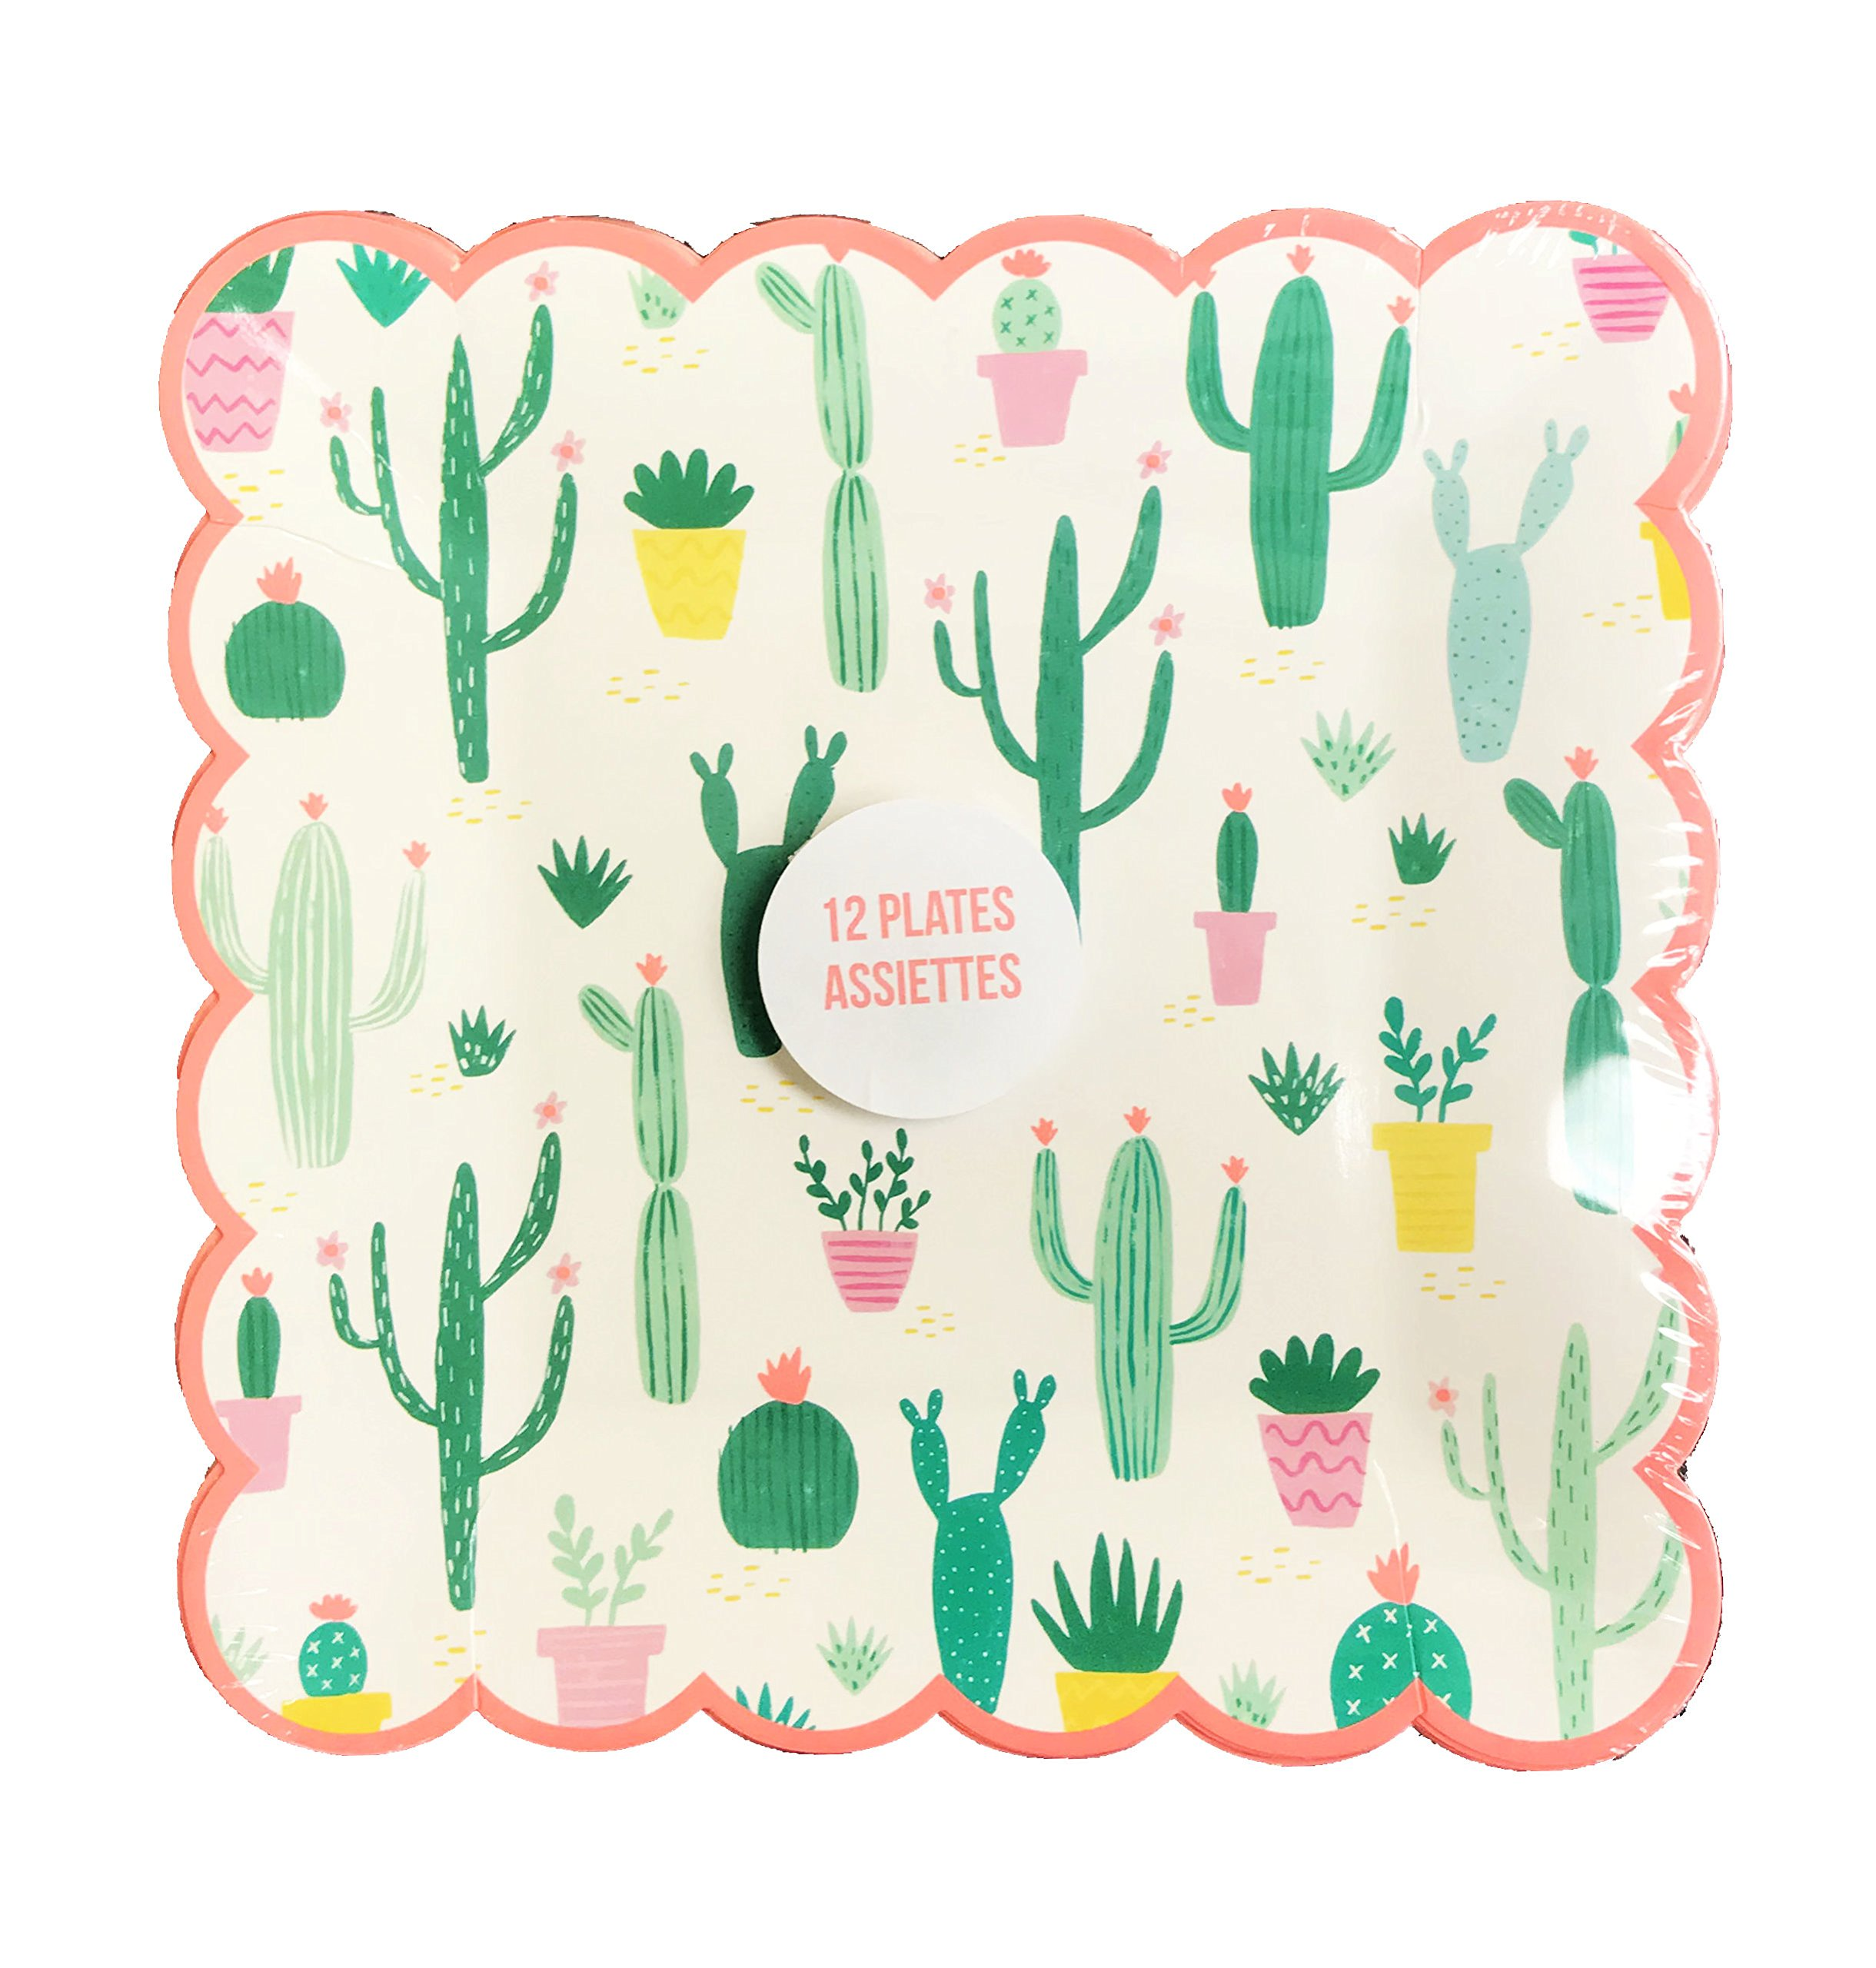 Whimsical Southwest Cacti Themed Scalloped Edge Square Novelty Paper Party Plates (9 x 9) by Meri Meri